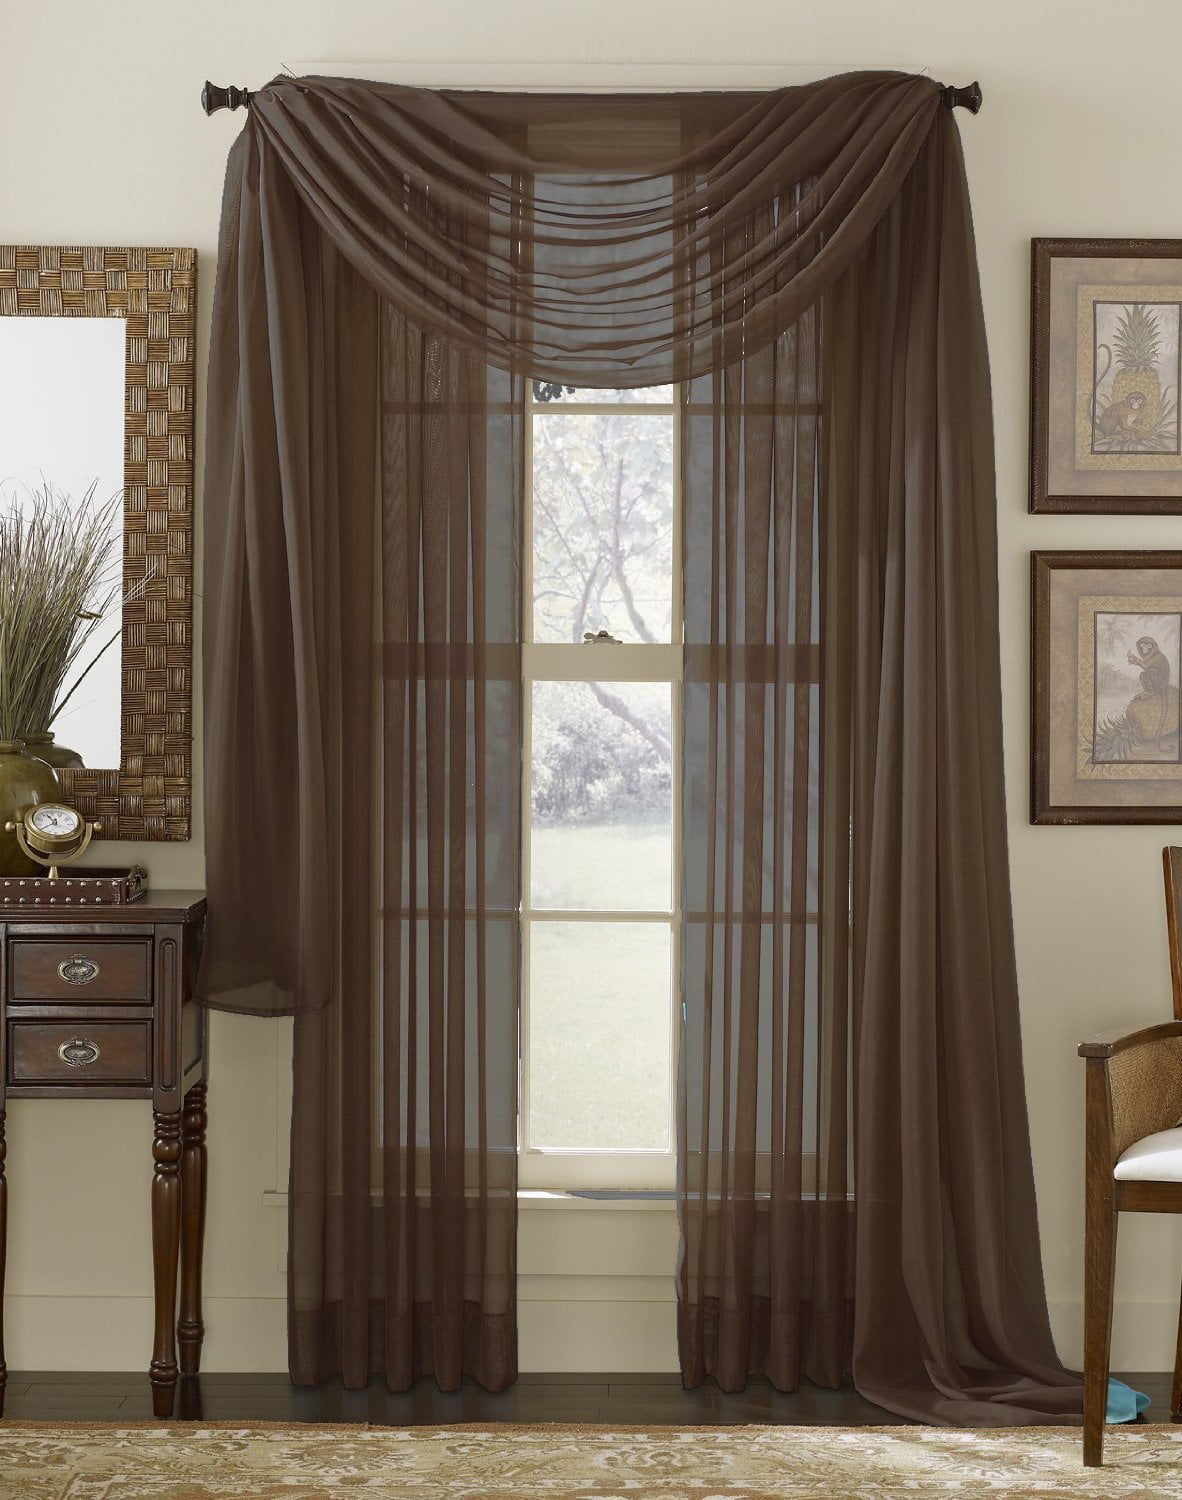 Decotex 3 Piece Sheer Voile Curtain Panel Drape Set Includes